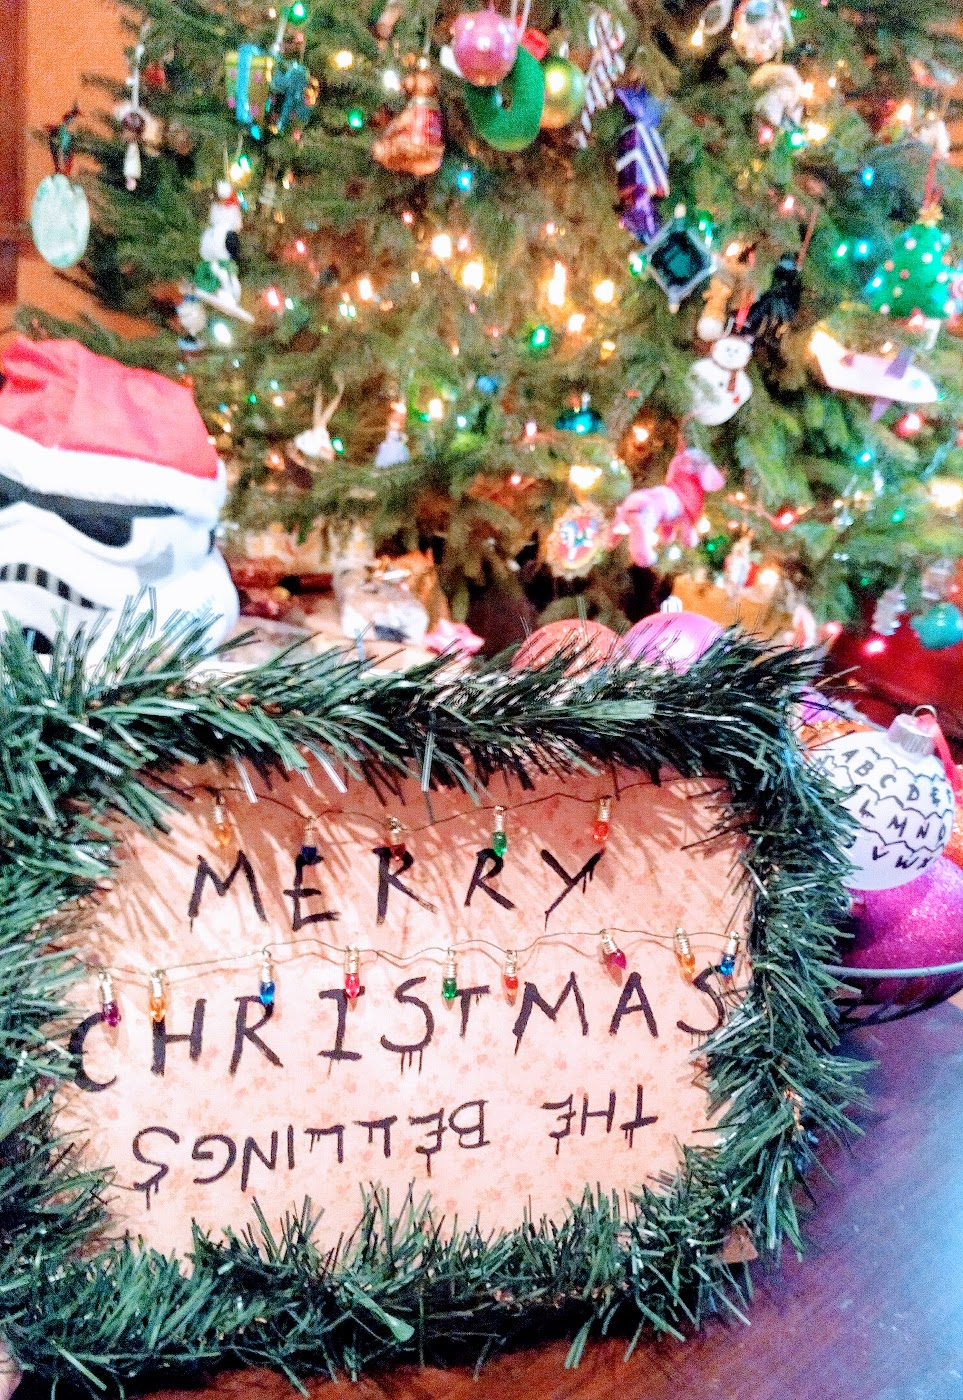 leveling up our geeky christmas decor the domestic geek blog - Stranger Things Christmas Decorations